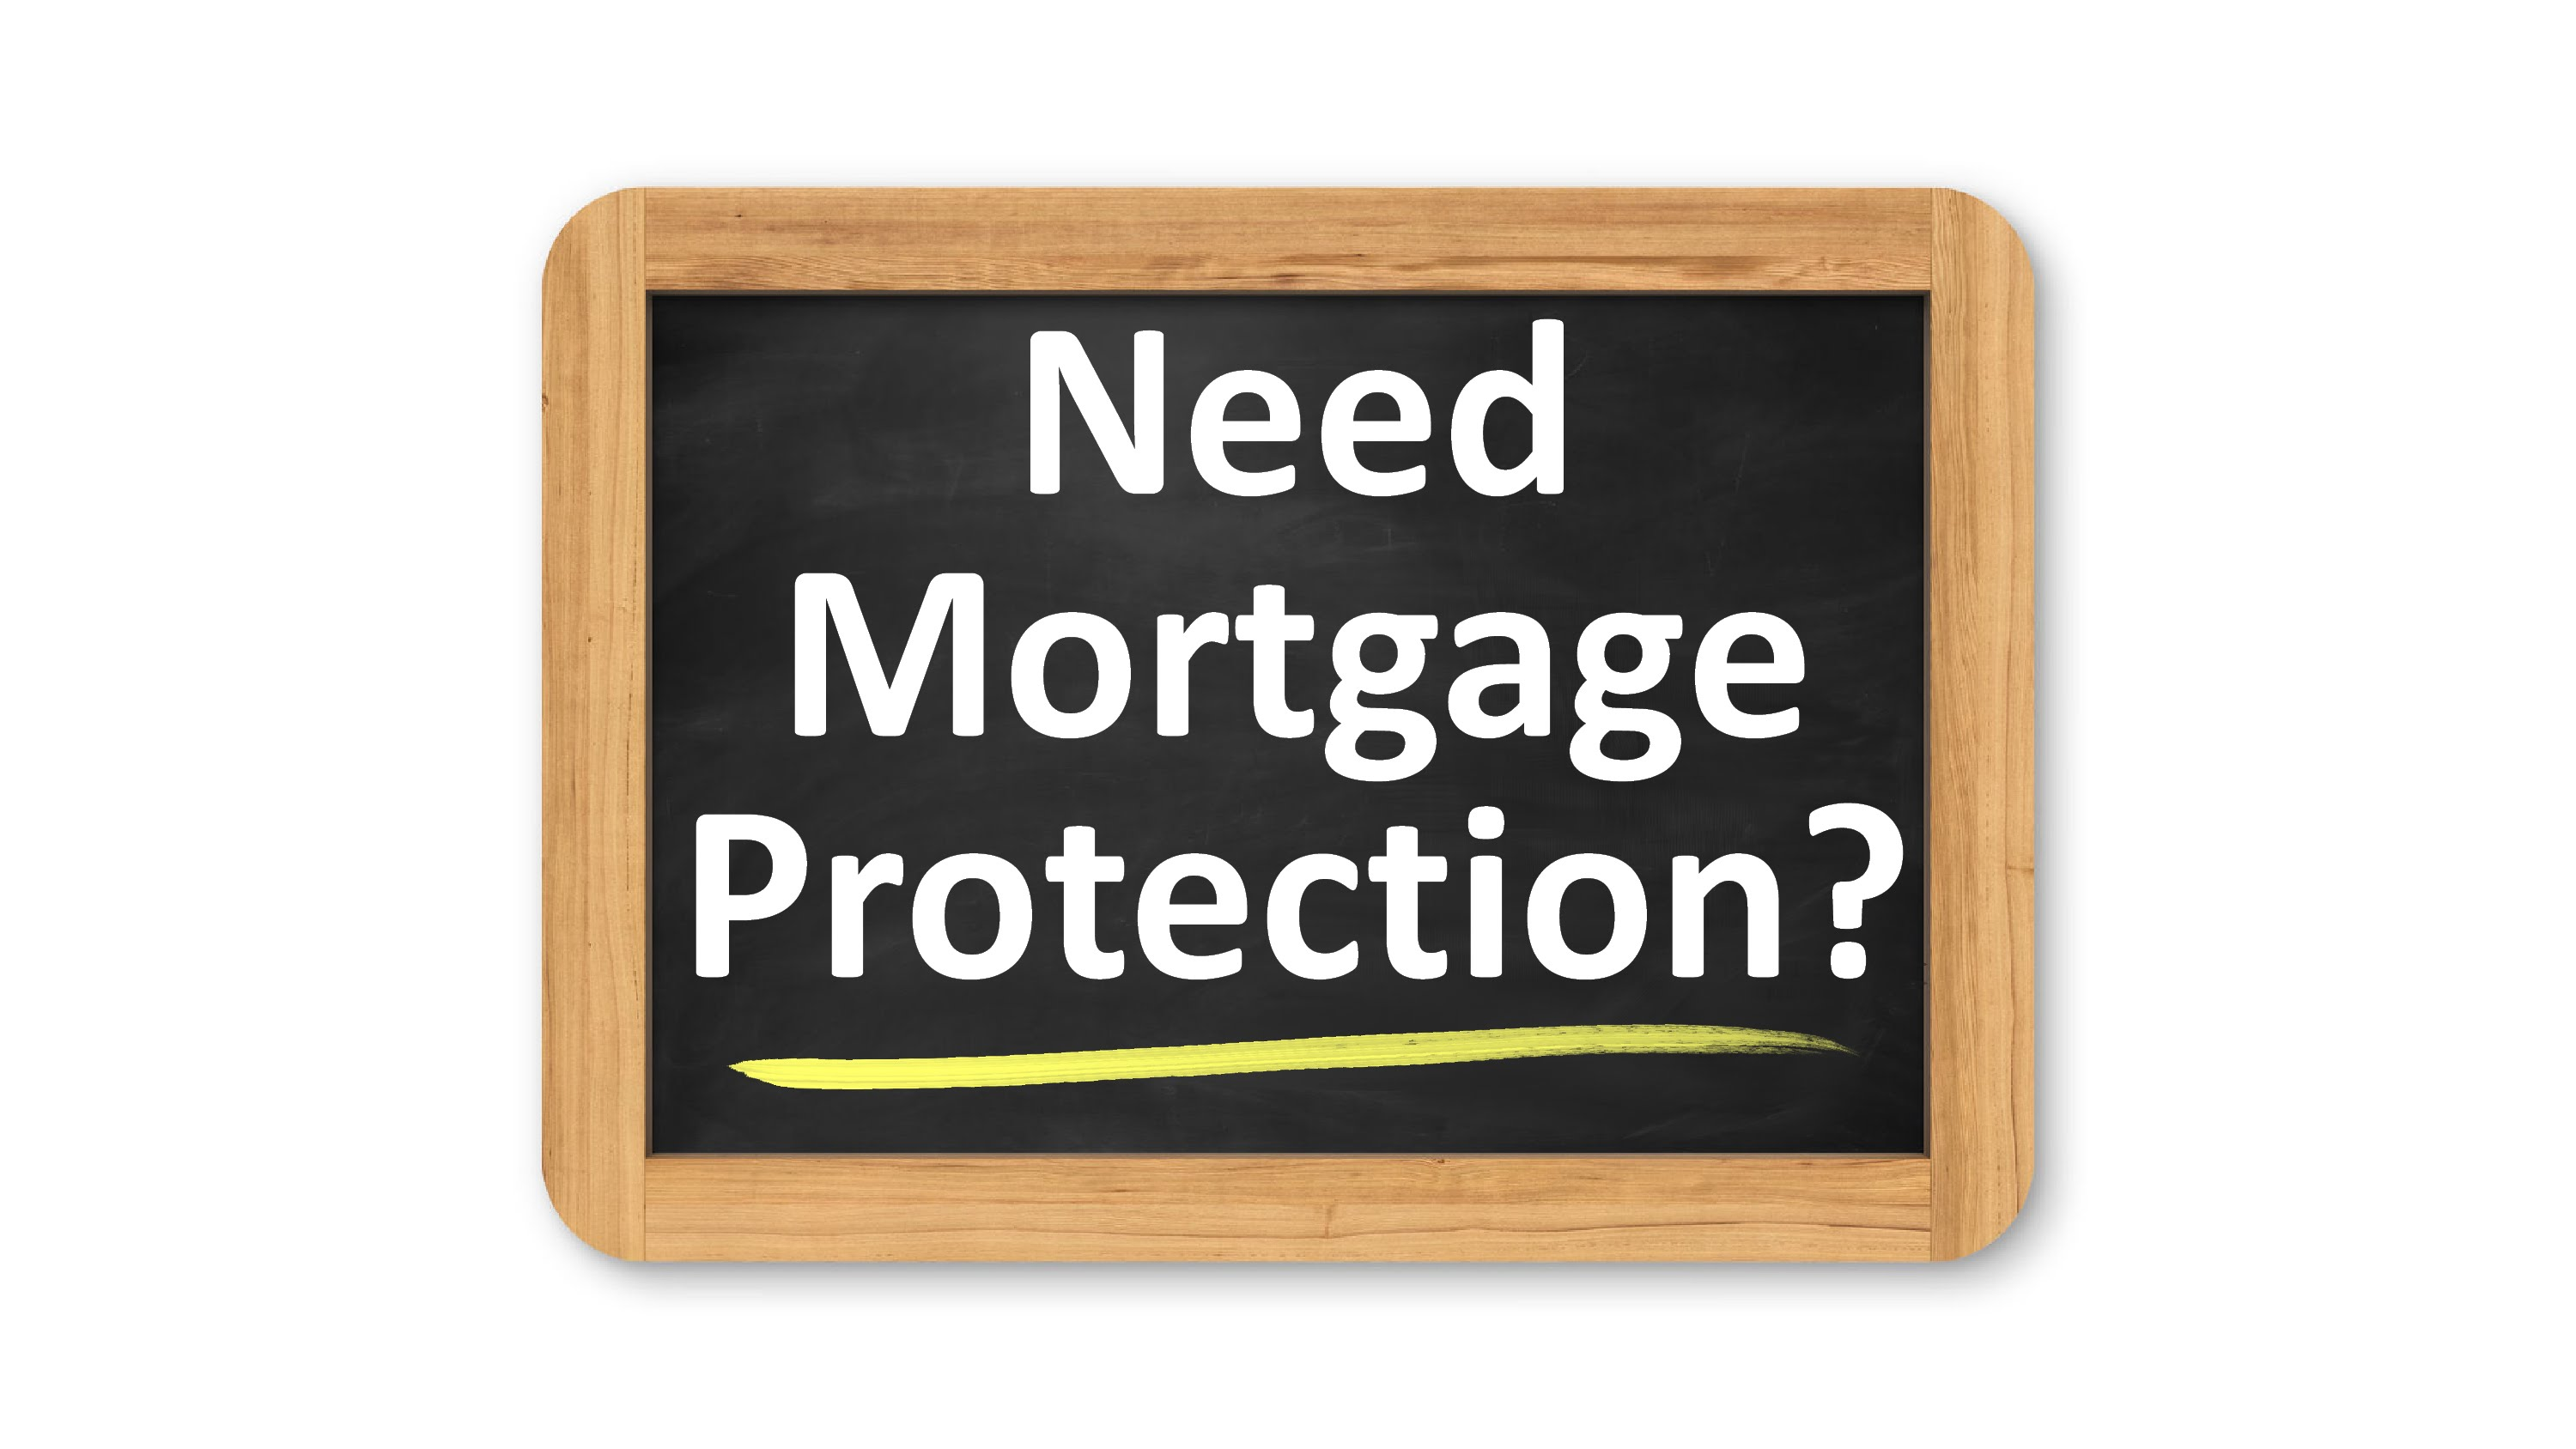 Mortgage Life Insurance Quotes Mortgage Protection Insurance Quotes  Raipurnews